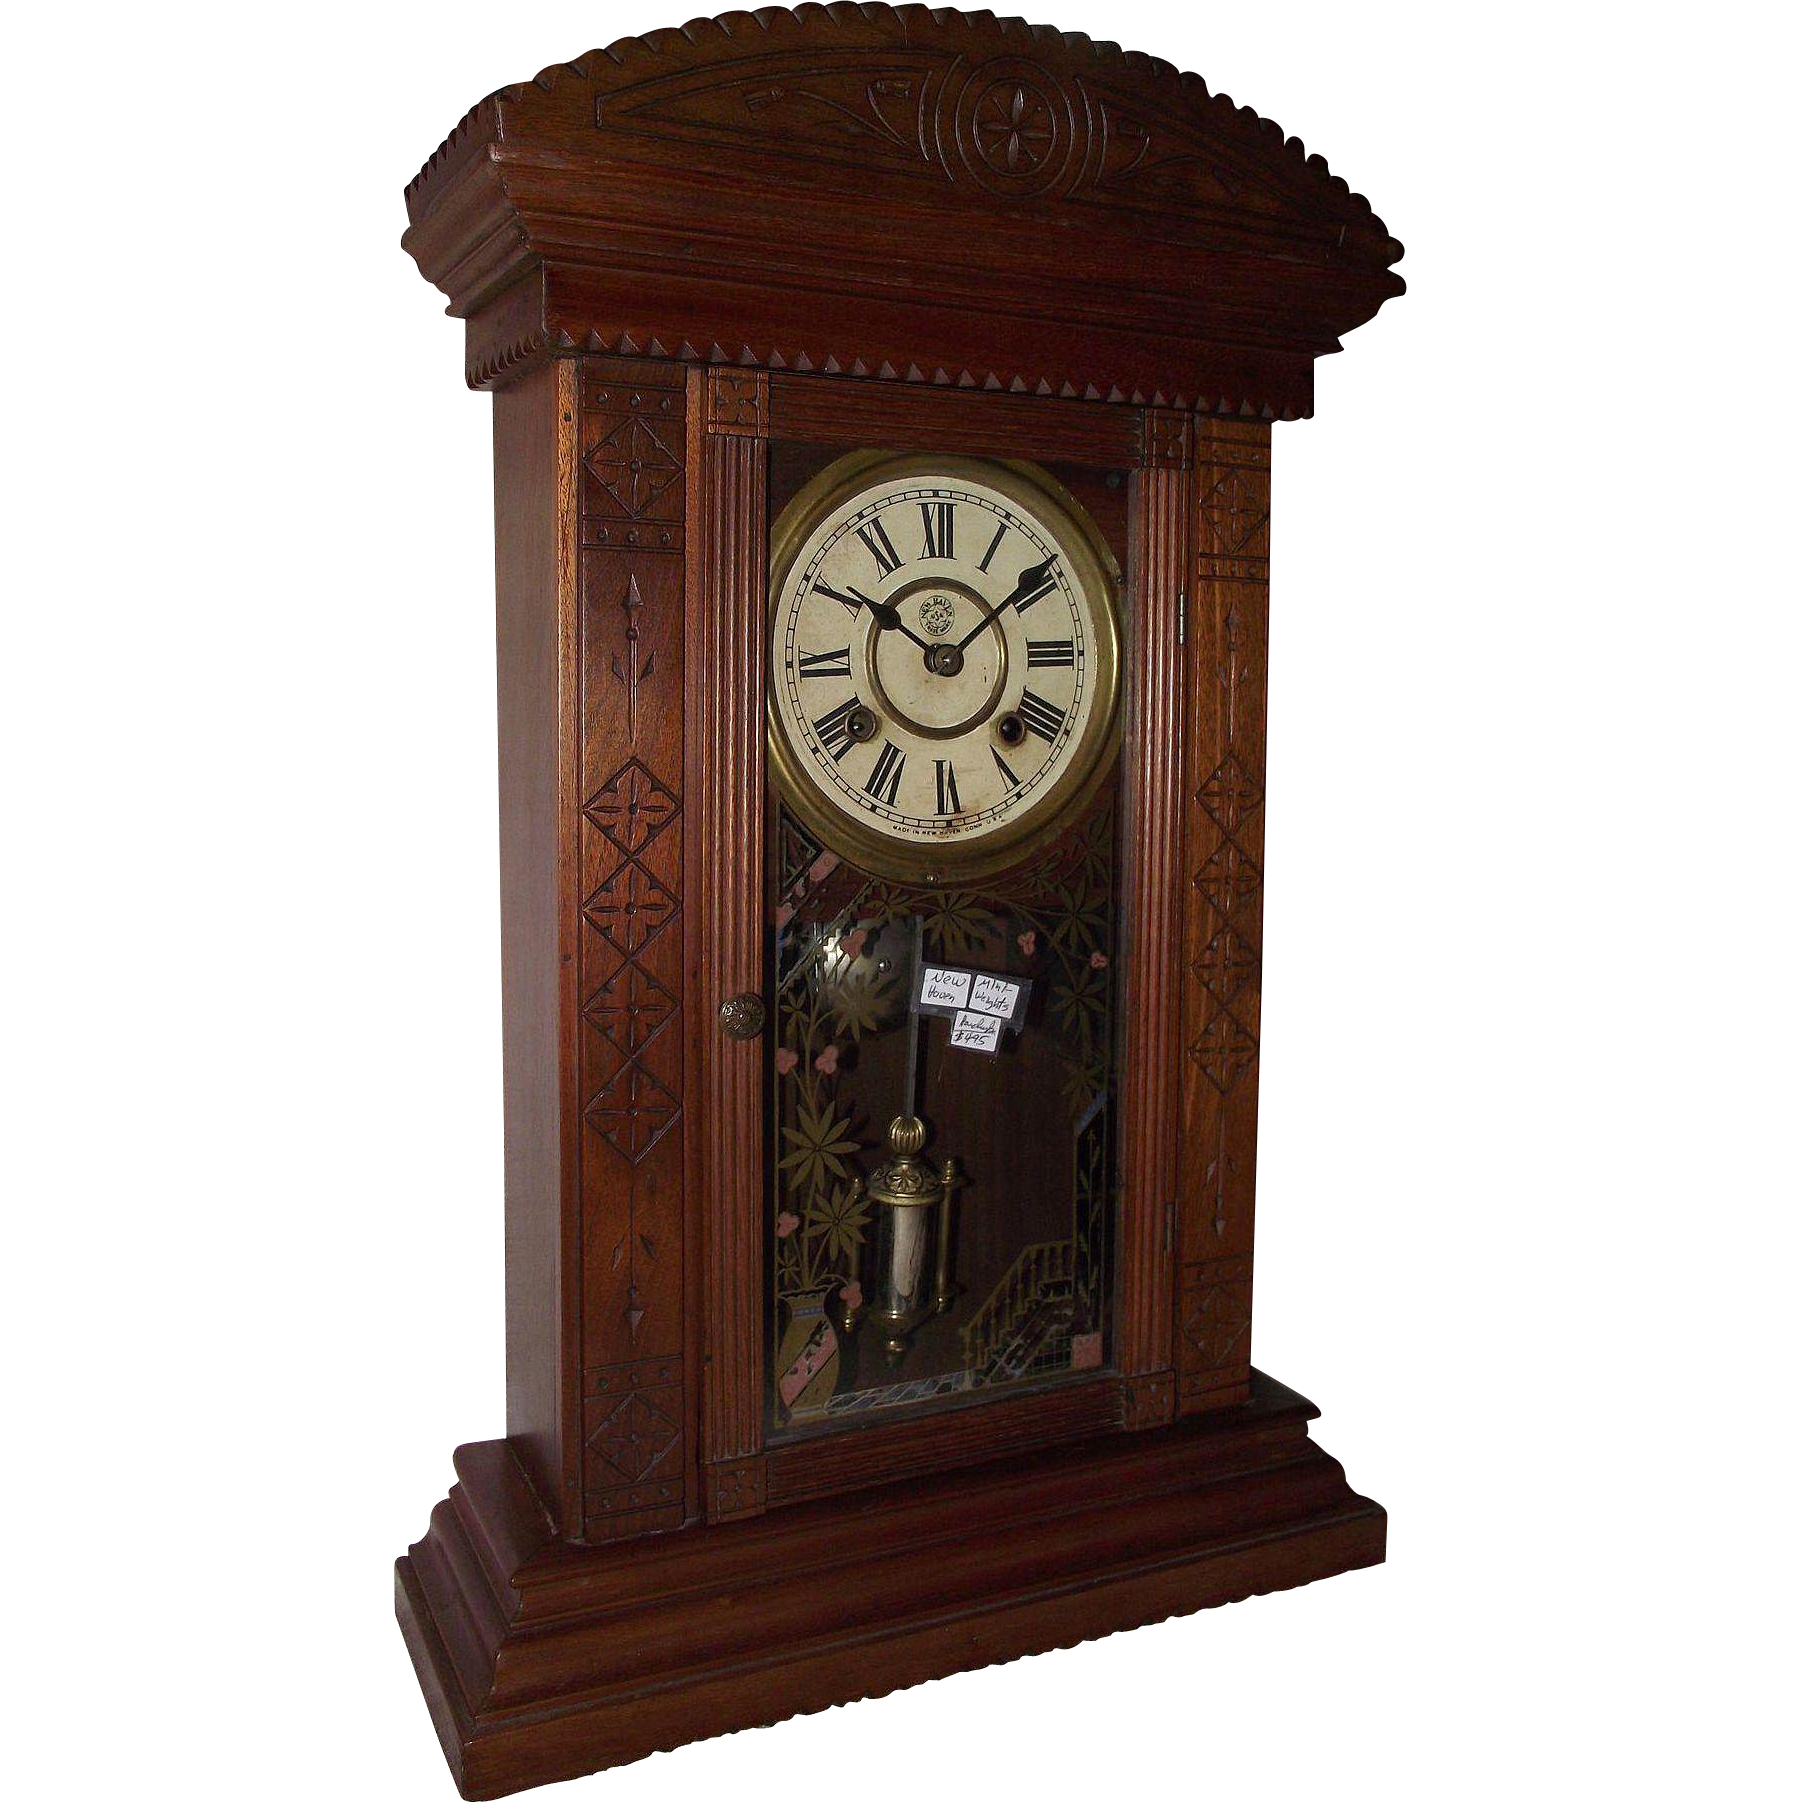 Rare smallest weight driven new haven ganges model shelf clock reportedly the smallestminiature weight driven clock made by new haven ganges model shelf clock amipublicfo Images